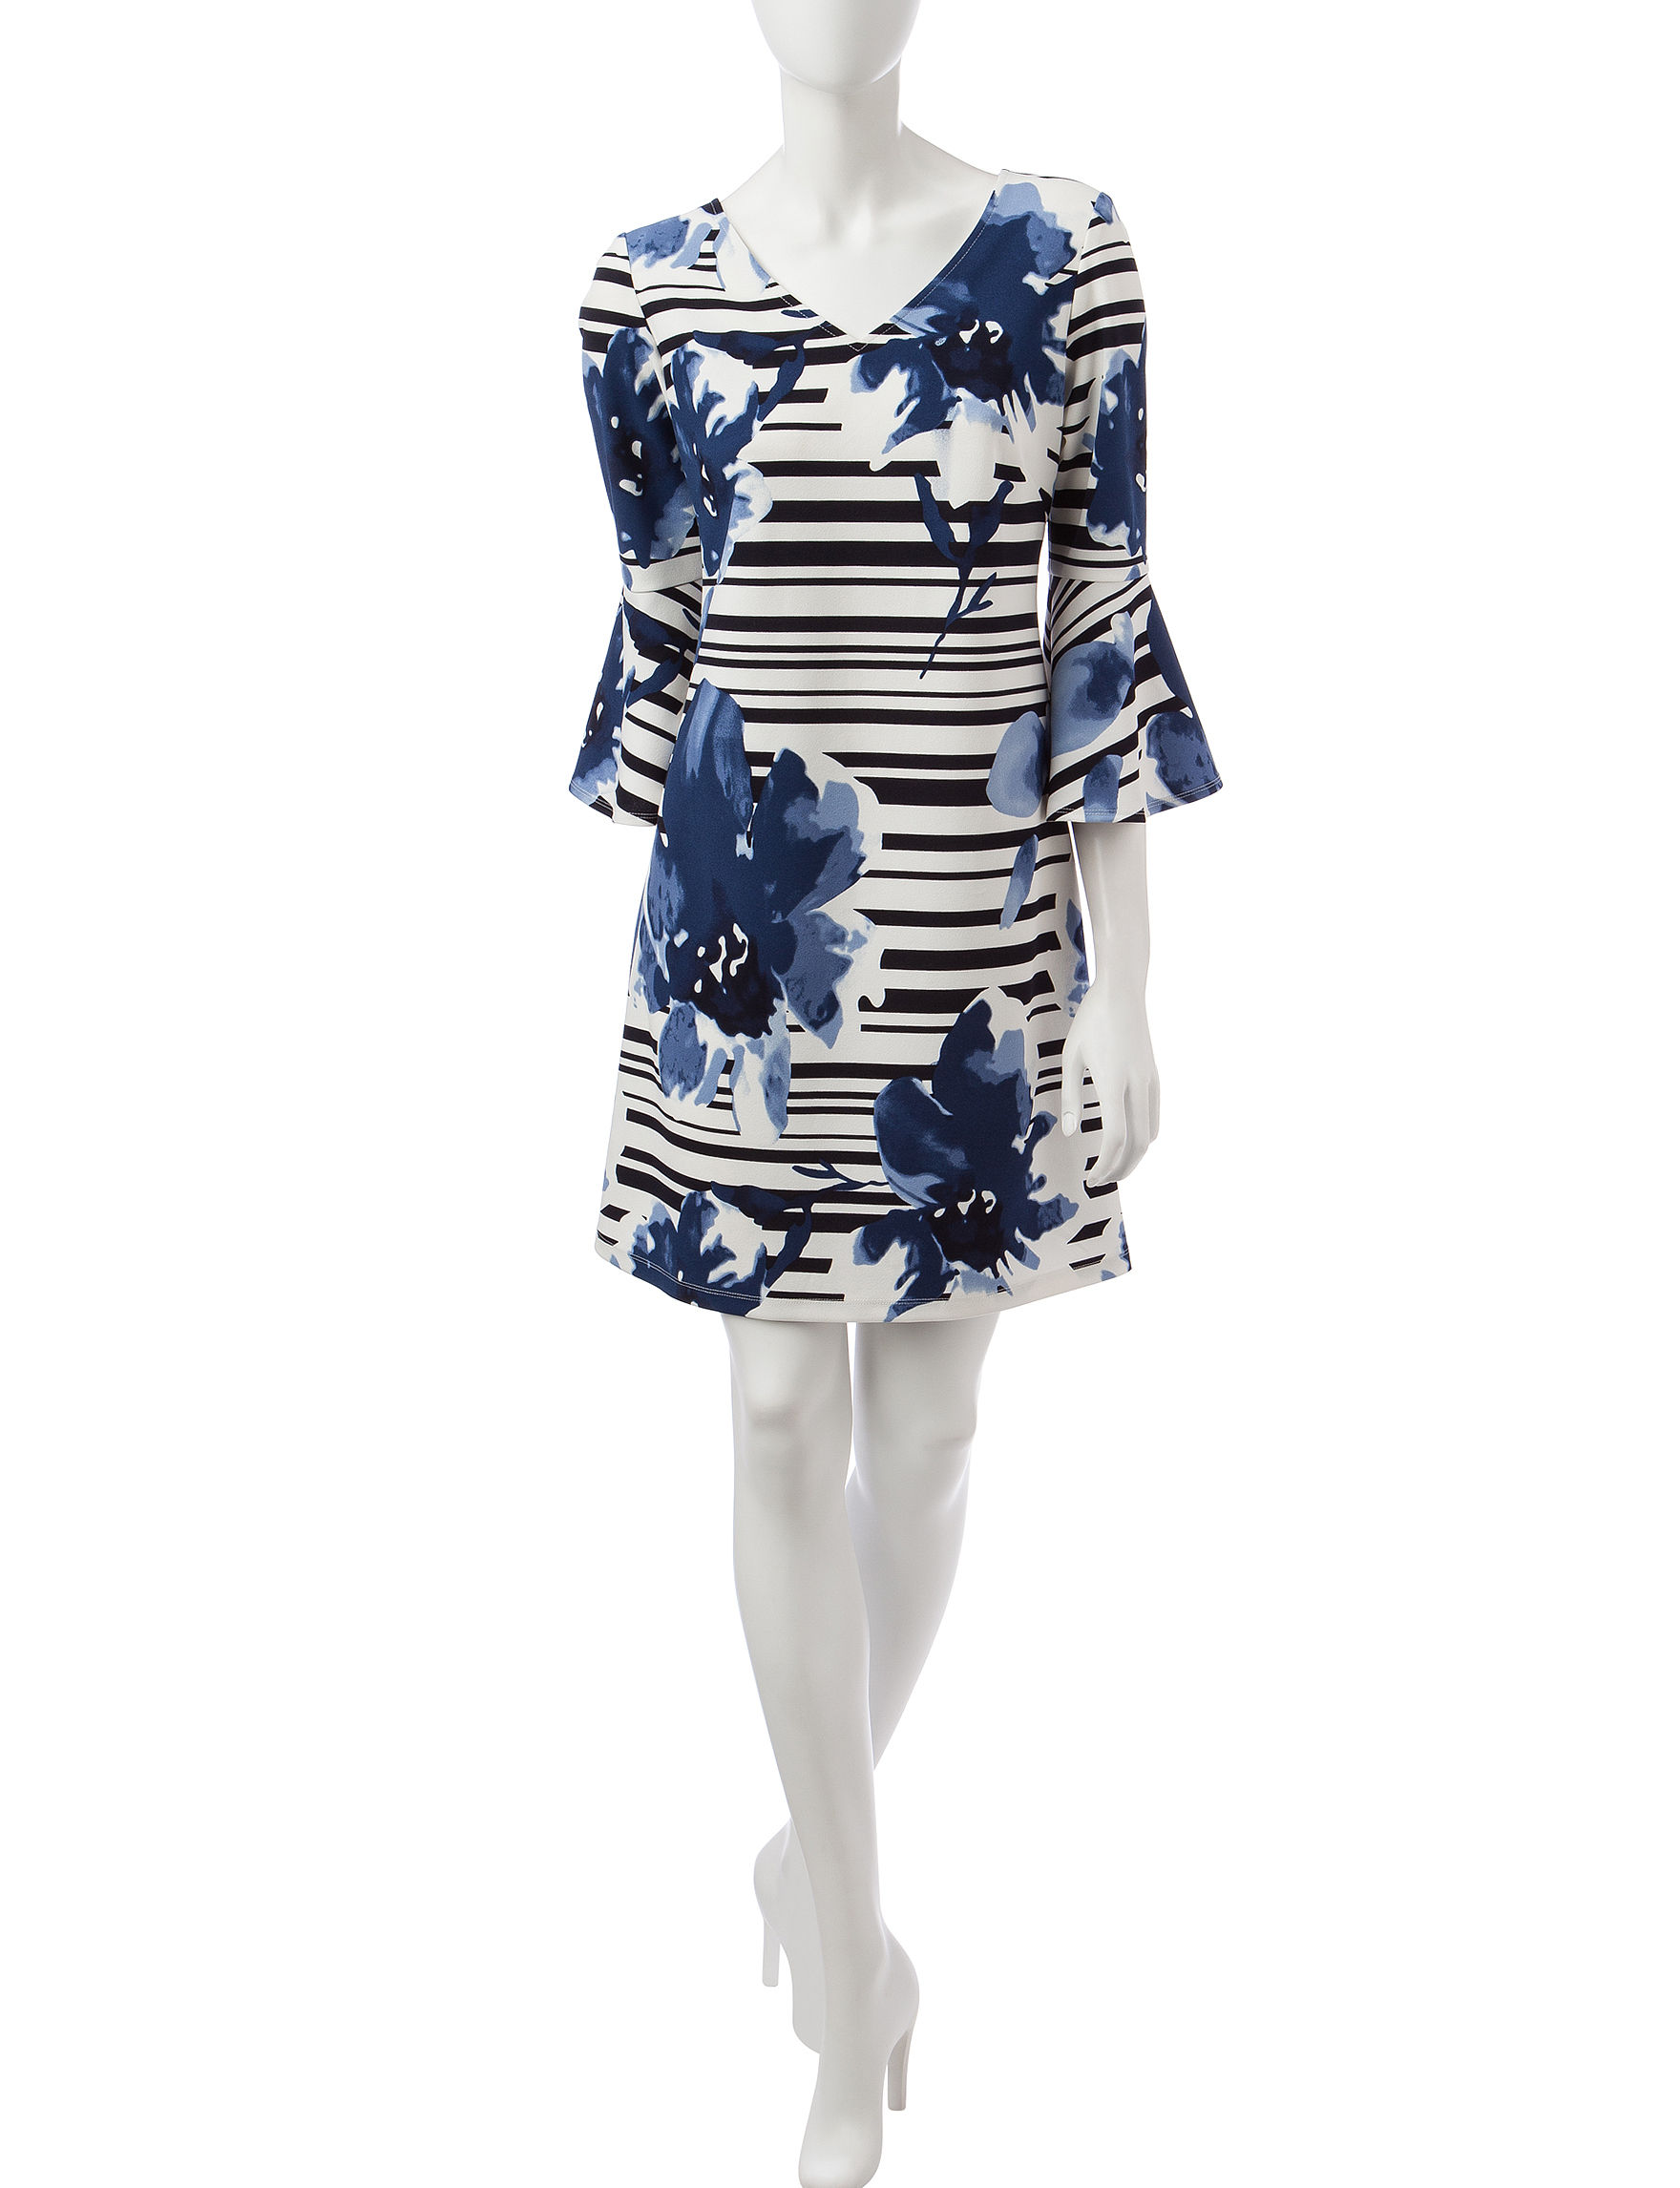 Ronni Nicole Blue / White / Black Everyday & Casual Shift Dresses